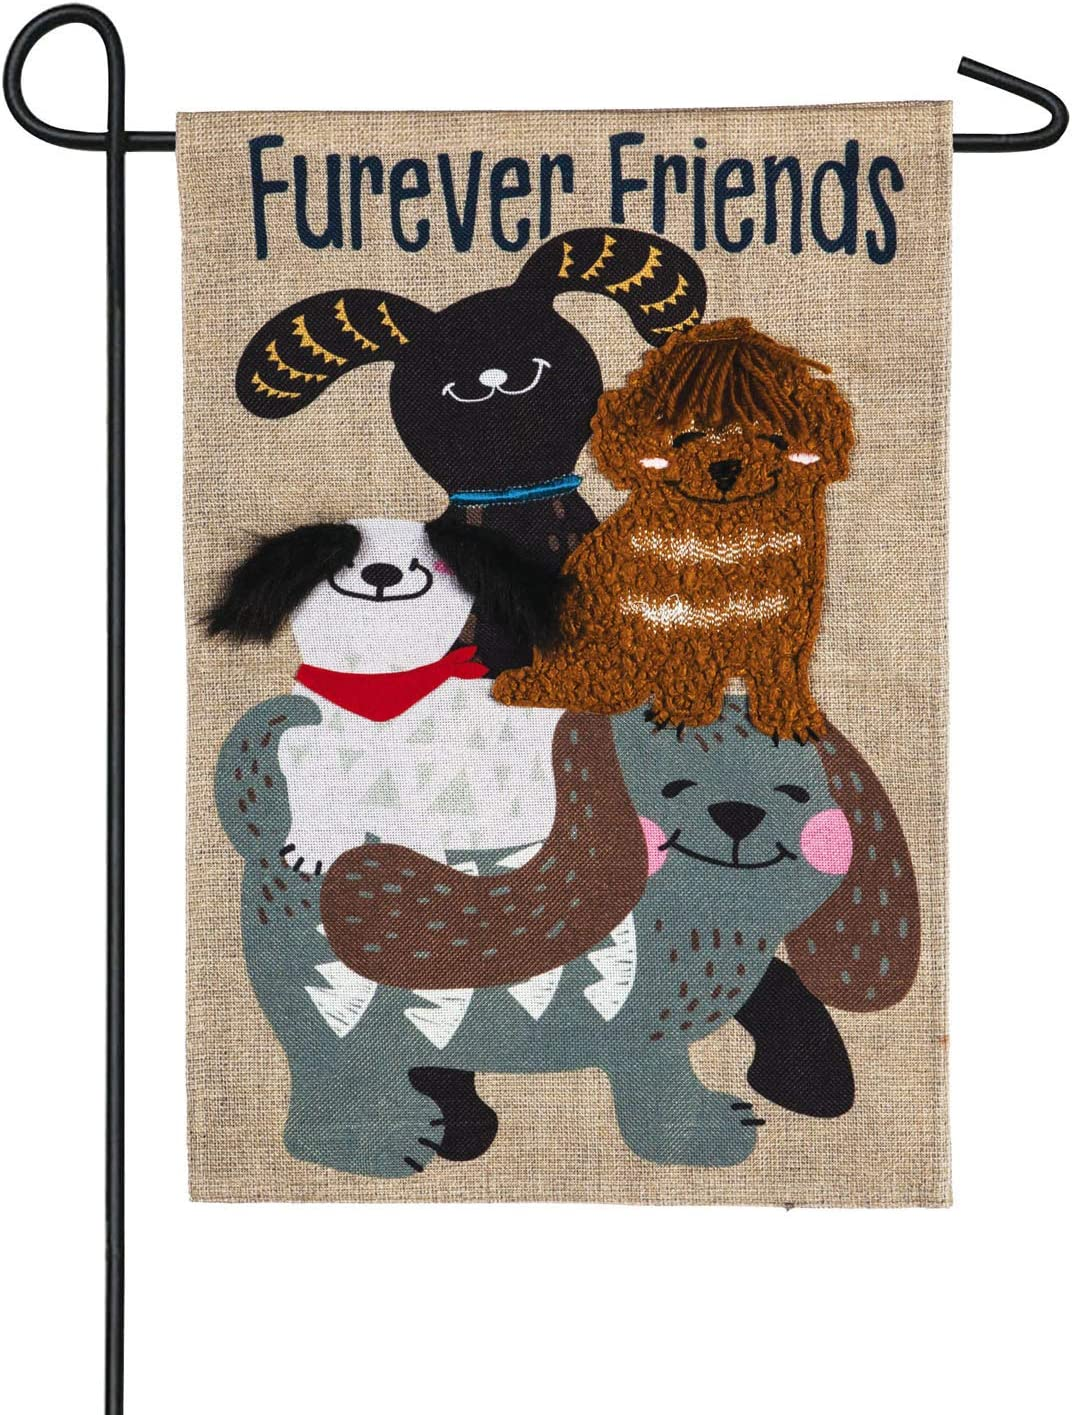 Furever Dog Friends Garden Burlap Flag - 13 x 1 x 18 Inches Dog Lovers Outdoor Décor for Canine Lovers of Gifts for Pet Lovers